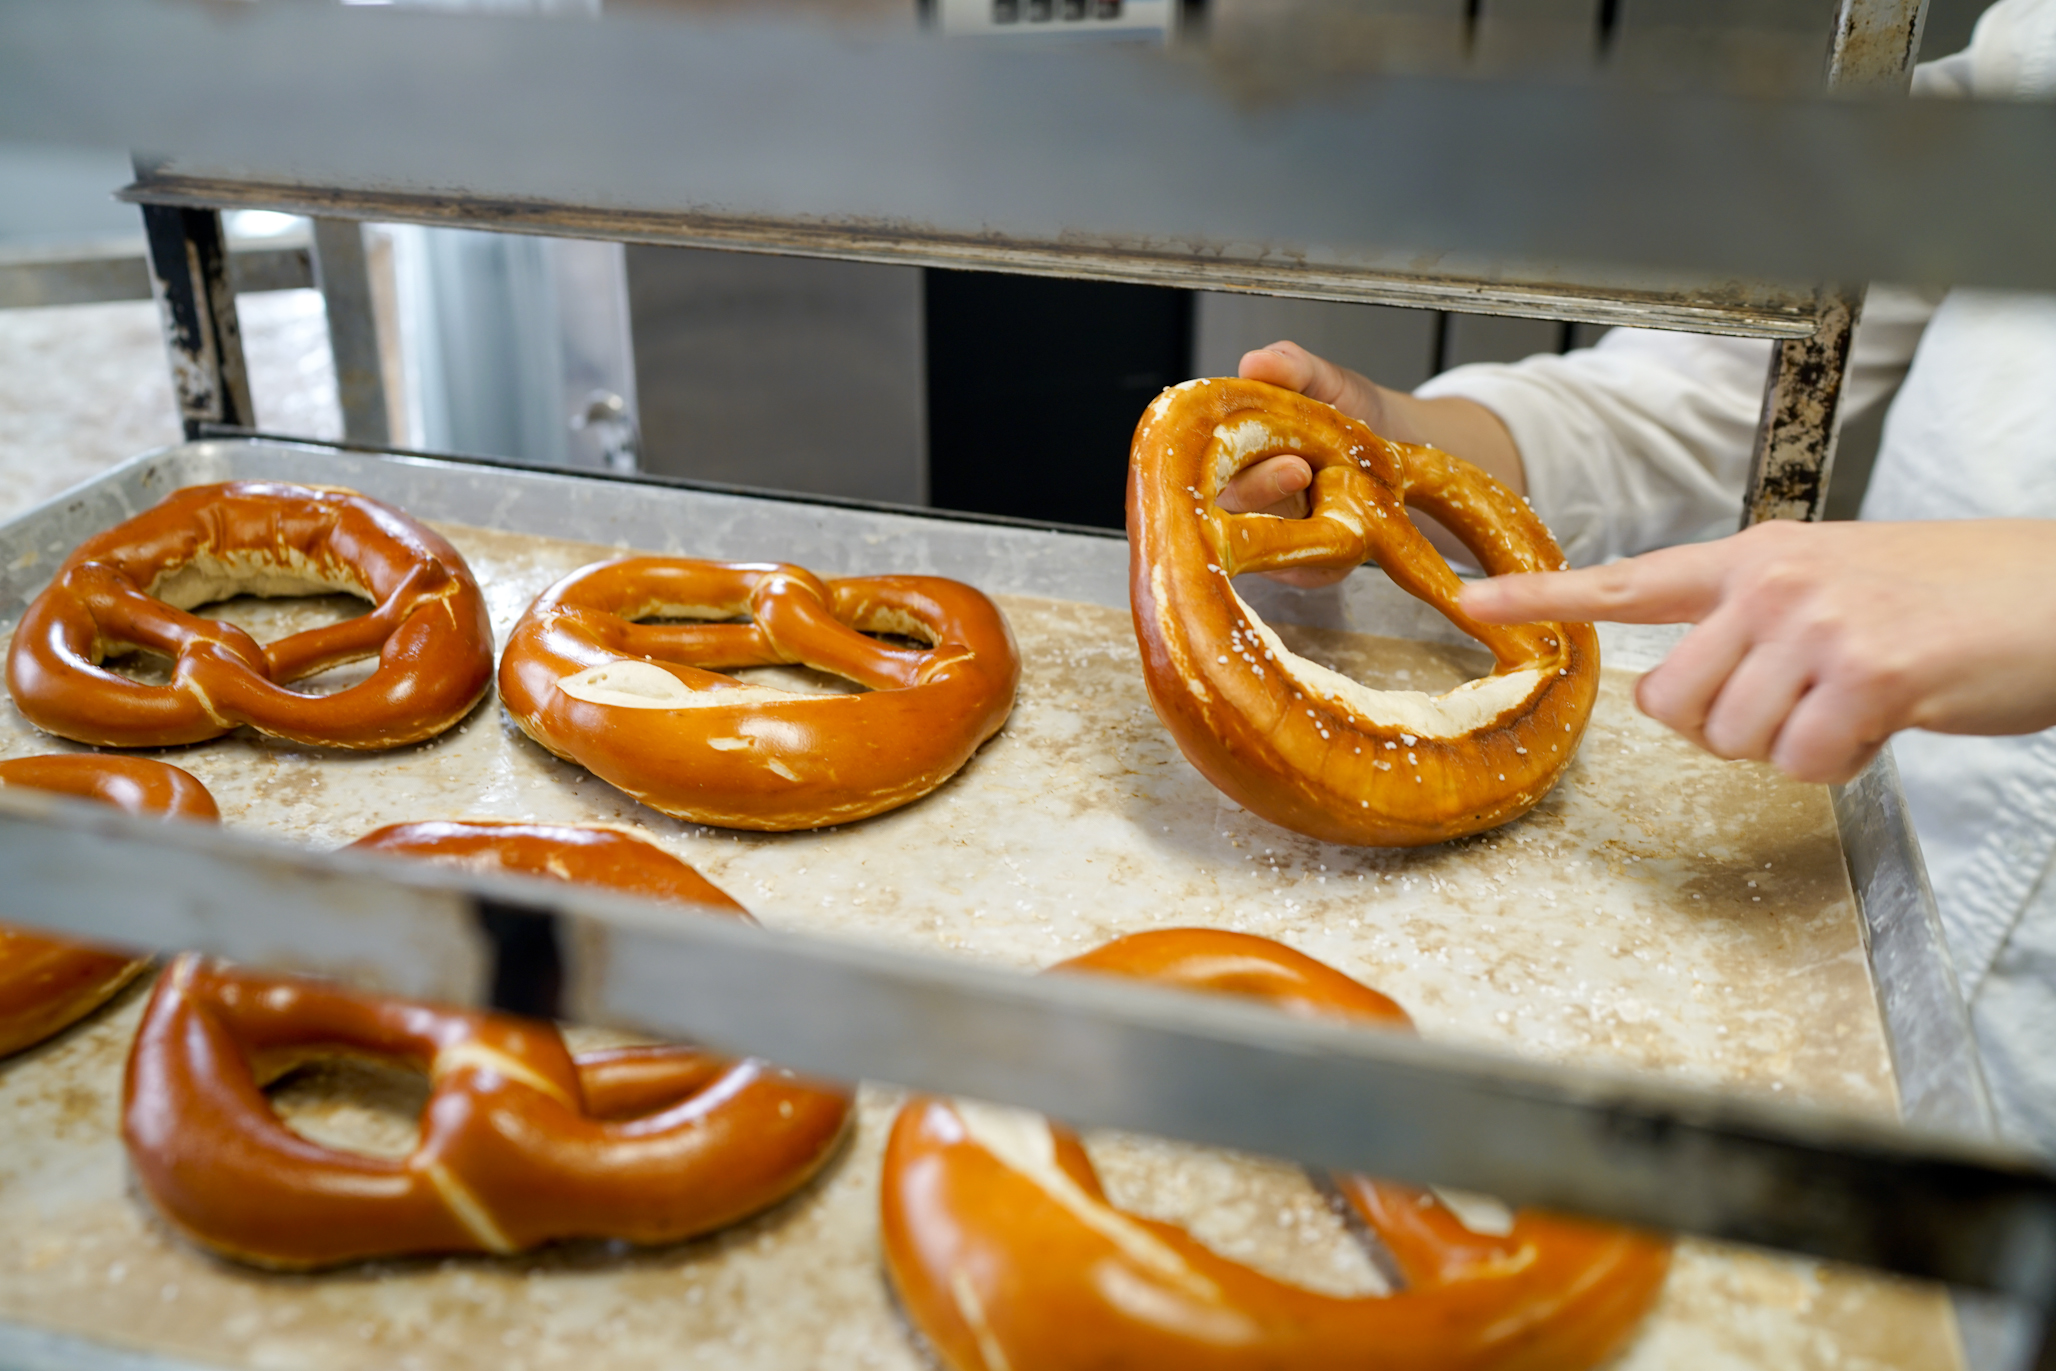 """Every pretzel made at the Bronx Baking Co. is finished by hand by one of the company's trained bakers. """"I can't figure out how to take the hands out of the process and maintain the quality, so it will be done like this forever."""" - Alexis Faraci, founder and owner of the Bronx Baking Co."""